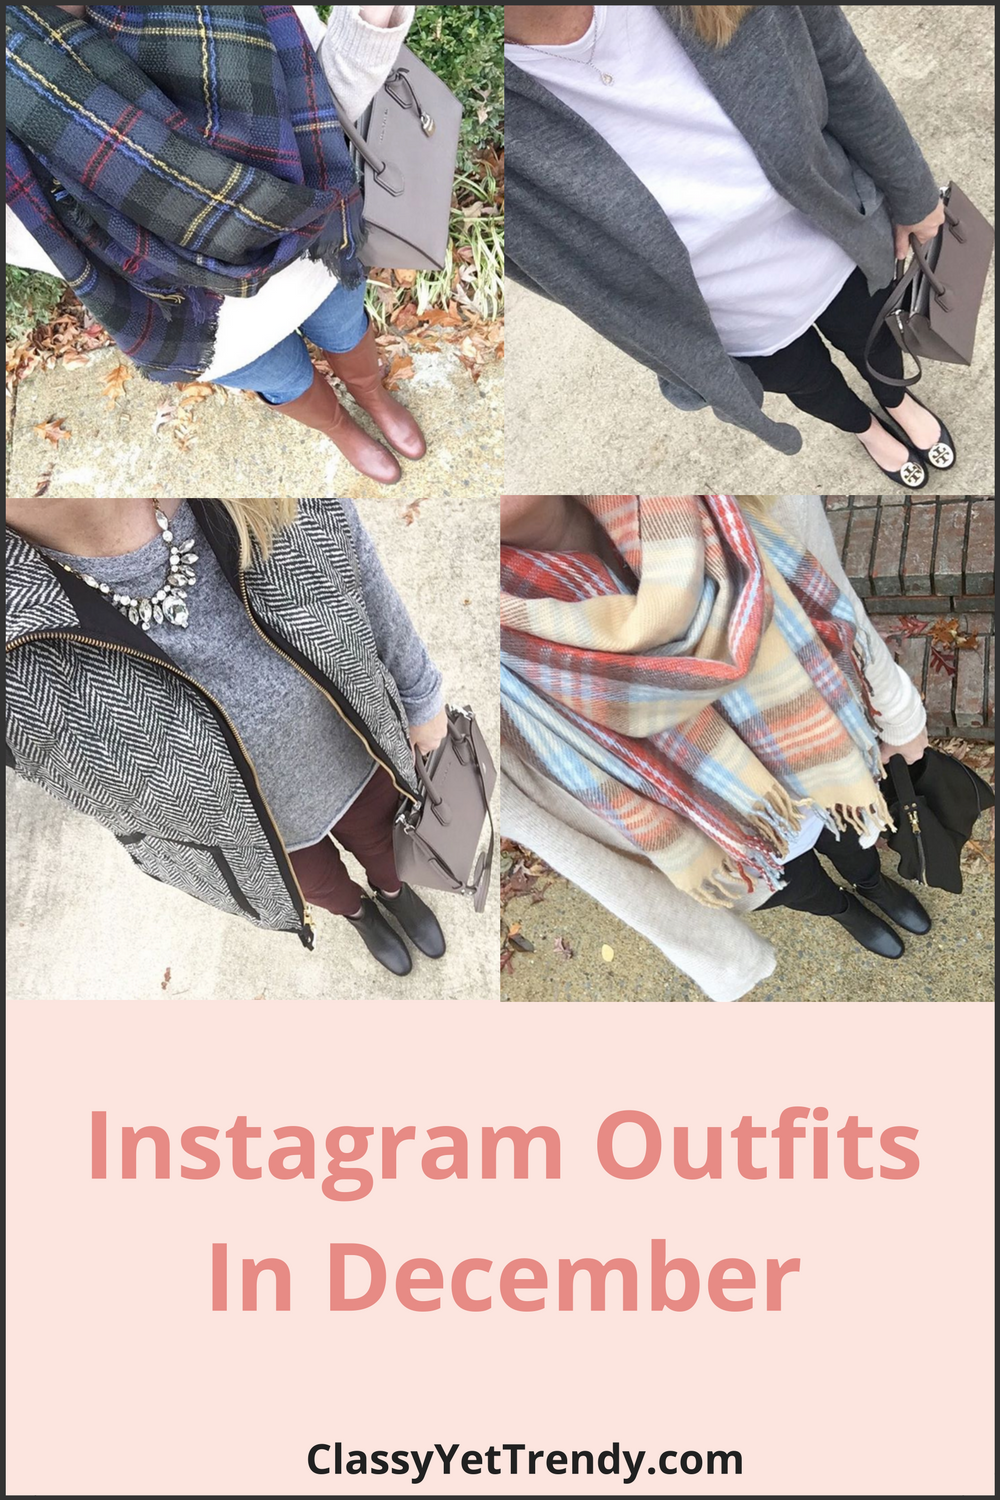 Instagram Outfits In December.